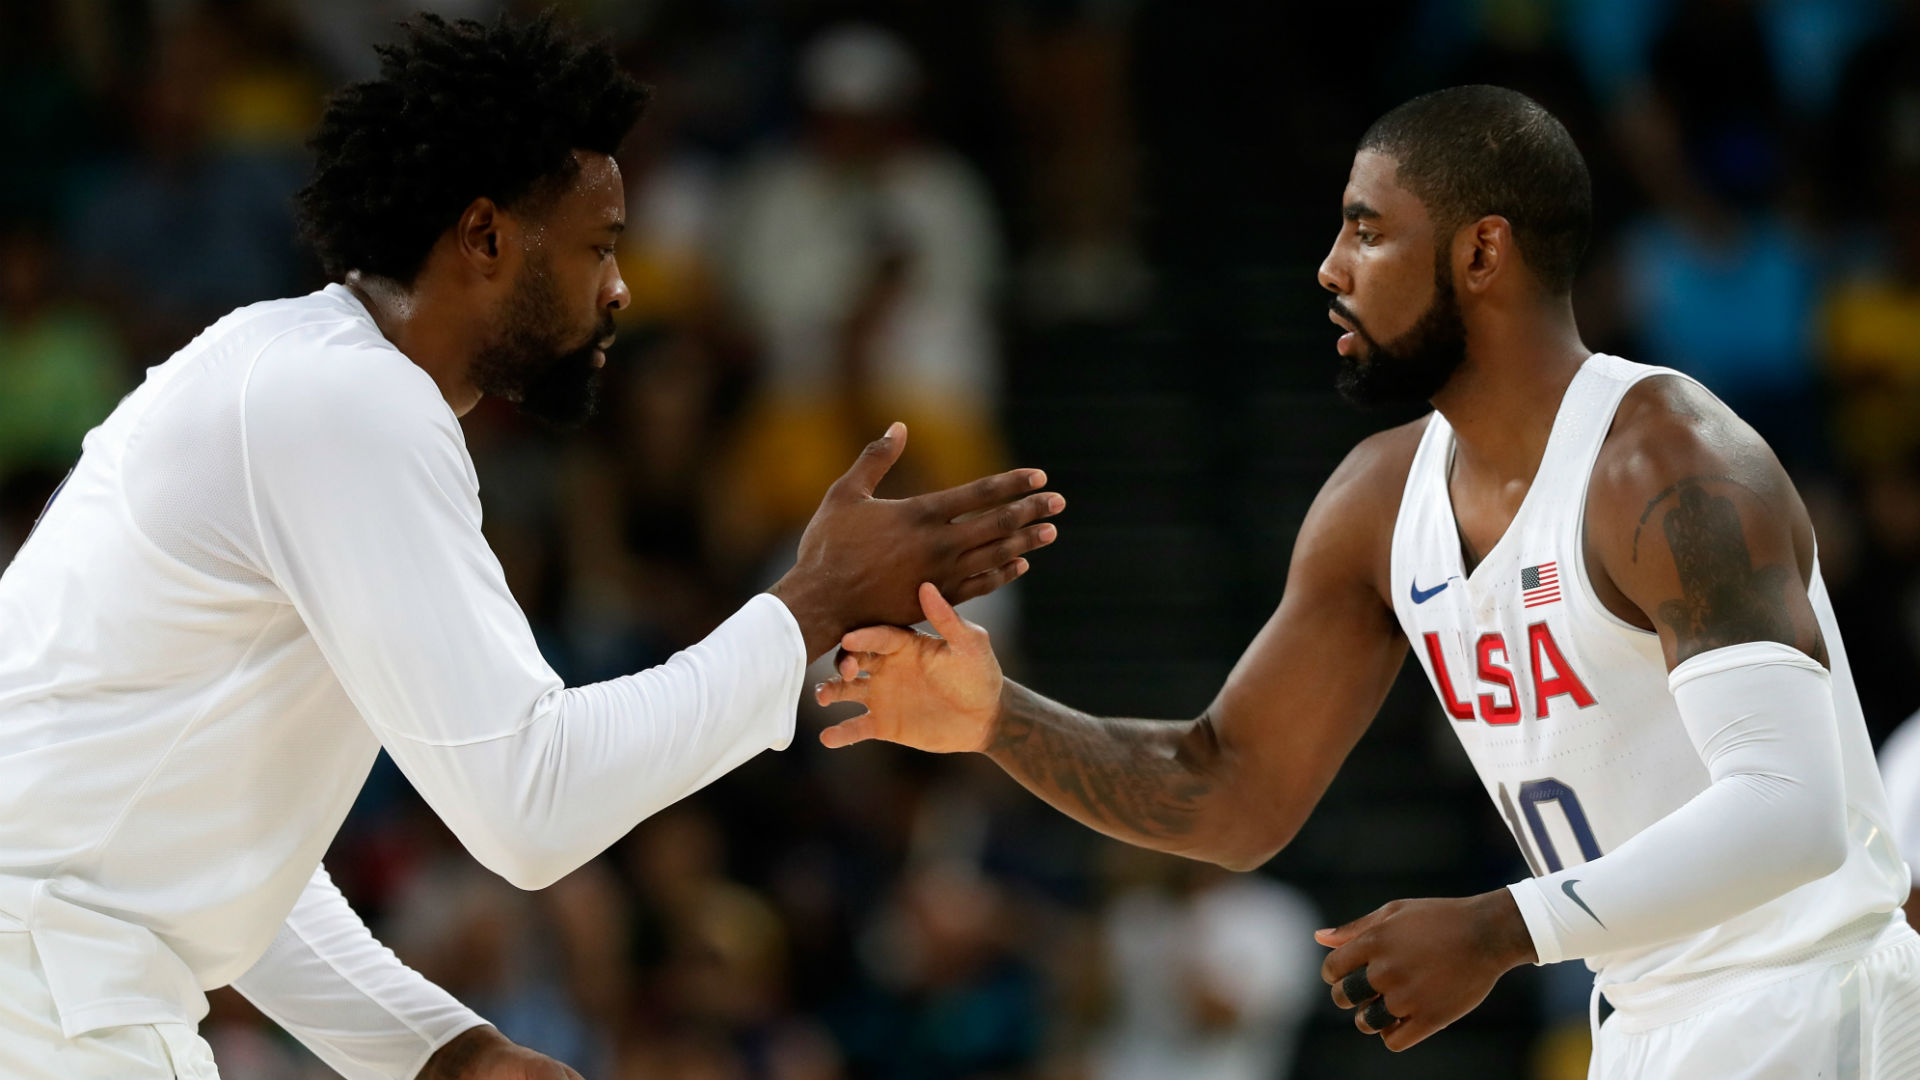 Kyrie Irving free agency rumors: Star guard recruiting DeAndre Jordan to join him, Kevin Durant on Nets